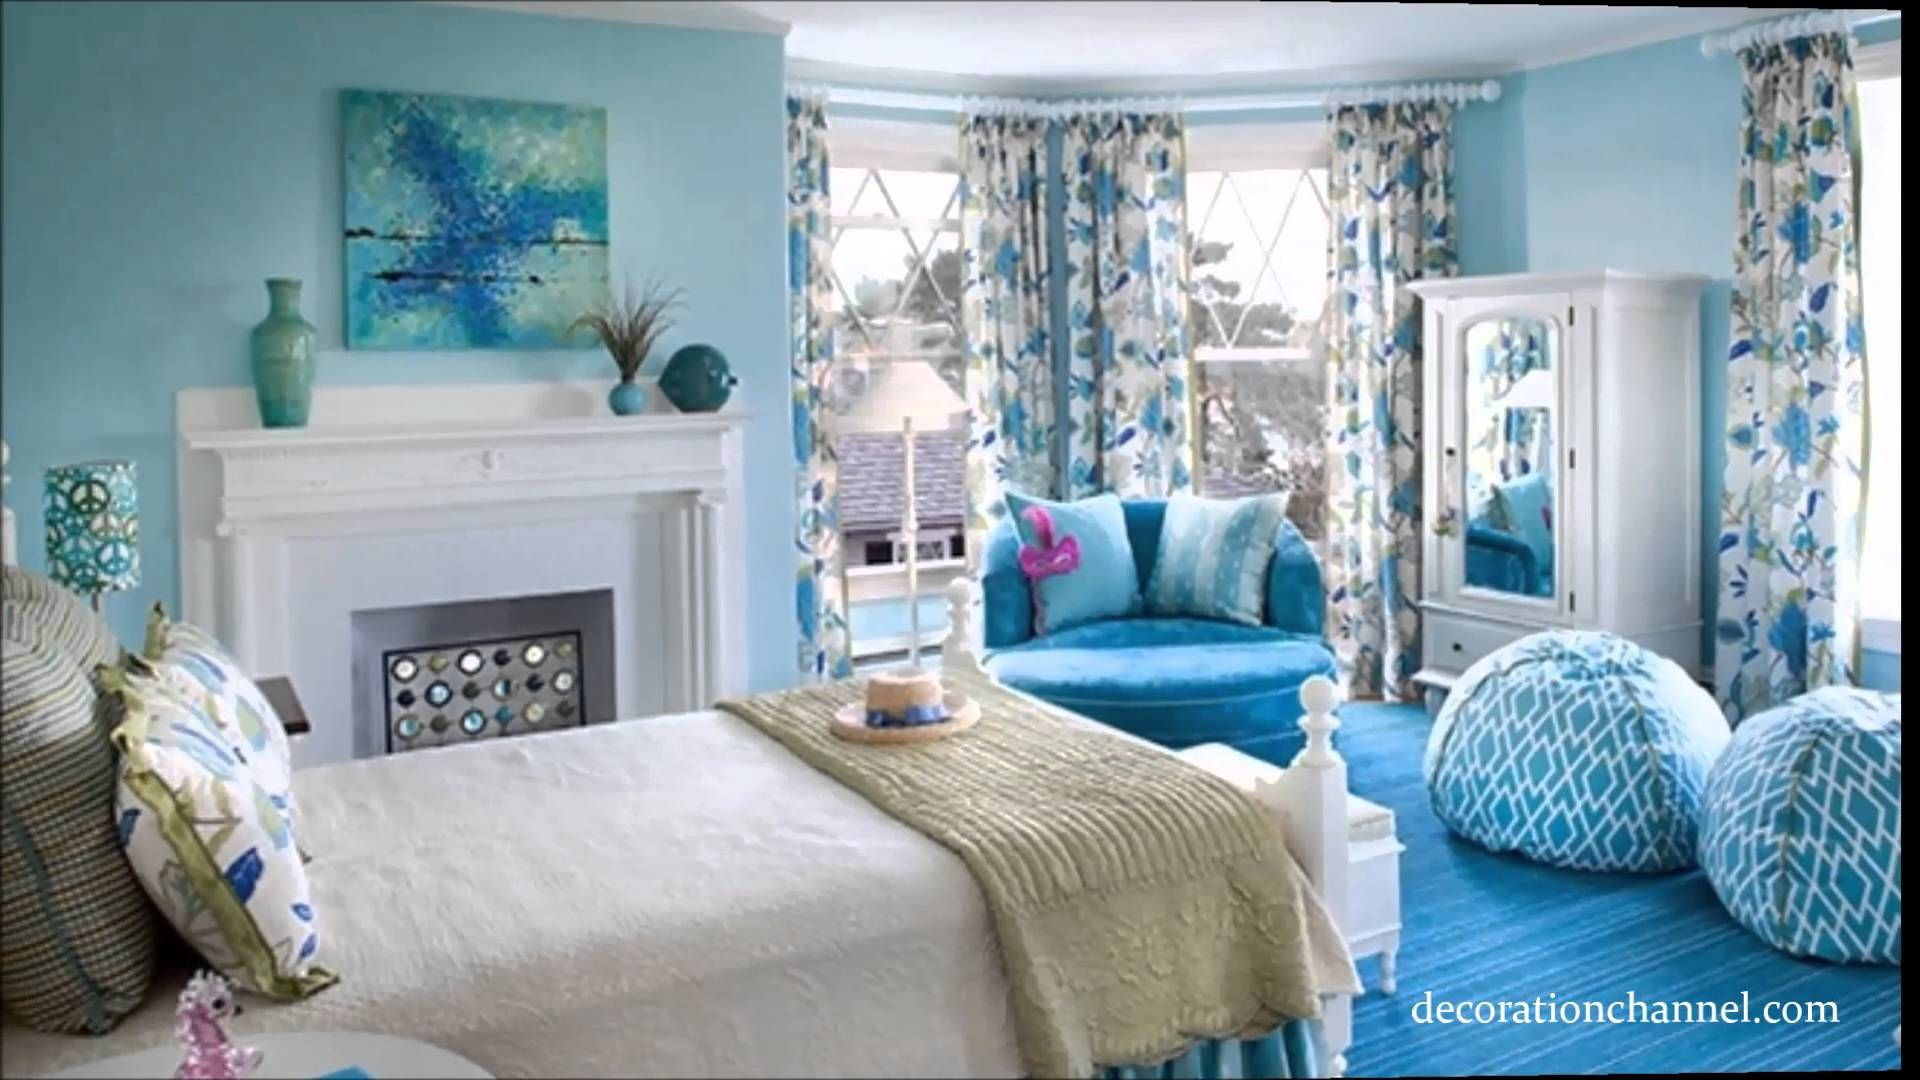 Tween Bedroom Ideas That Are Fun and Cool | Decor Ideas We Like ...